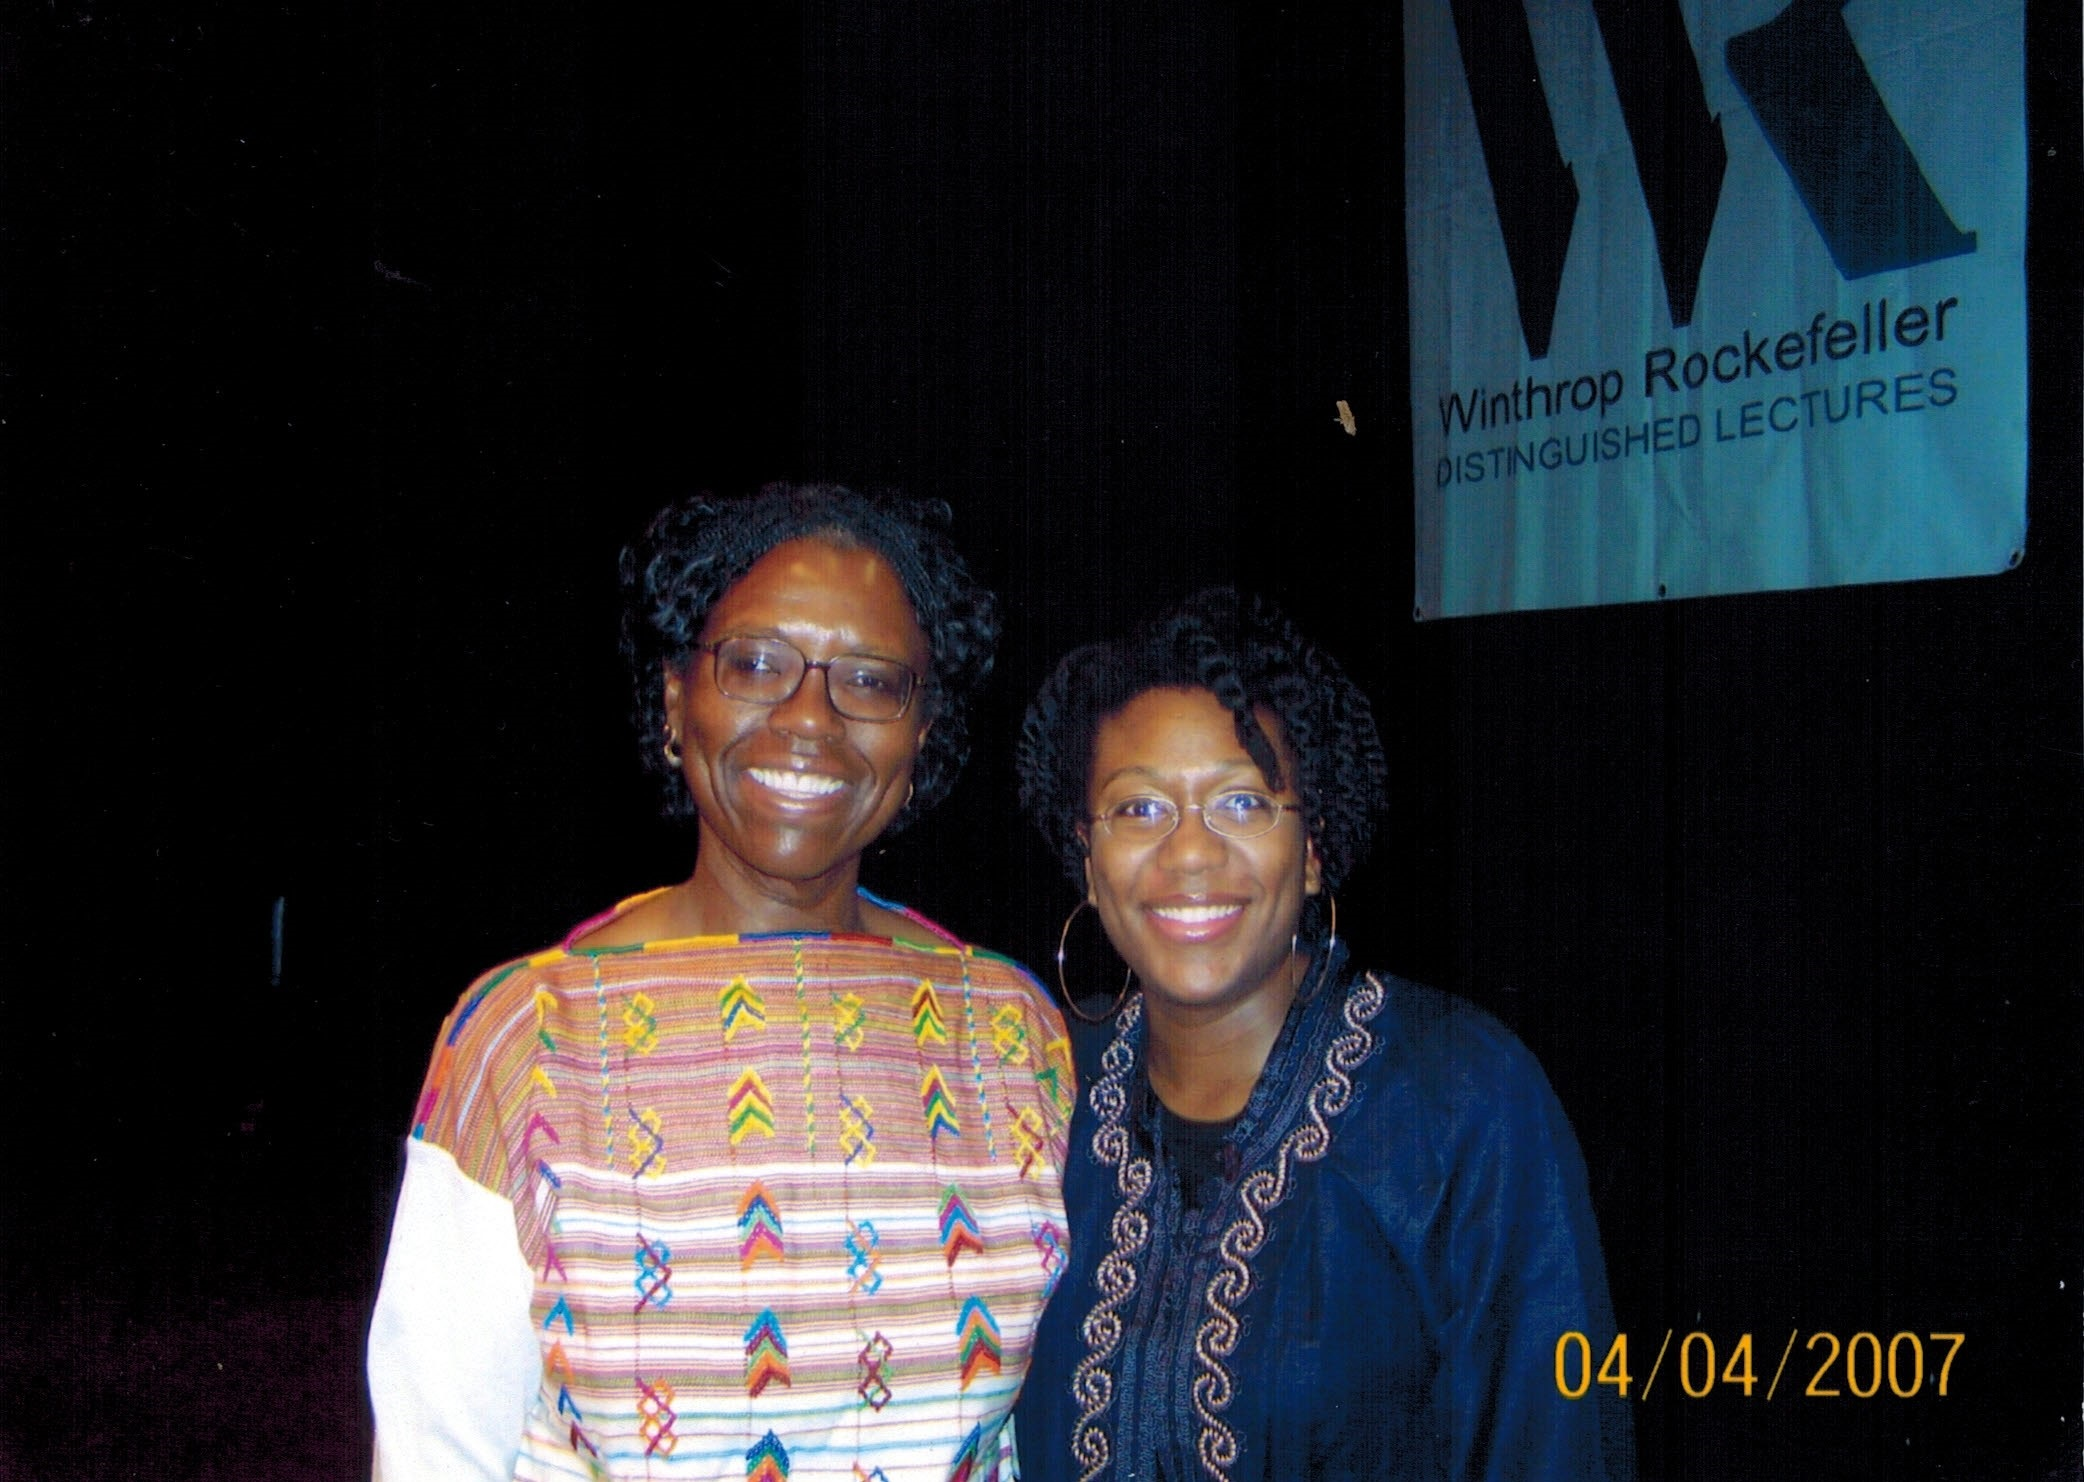 Gloria Naylor (left) with the author, Kami Fletcher (right) in April 2007